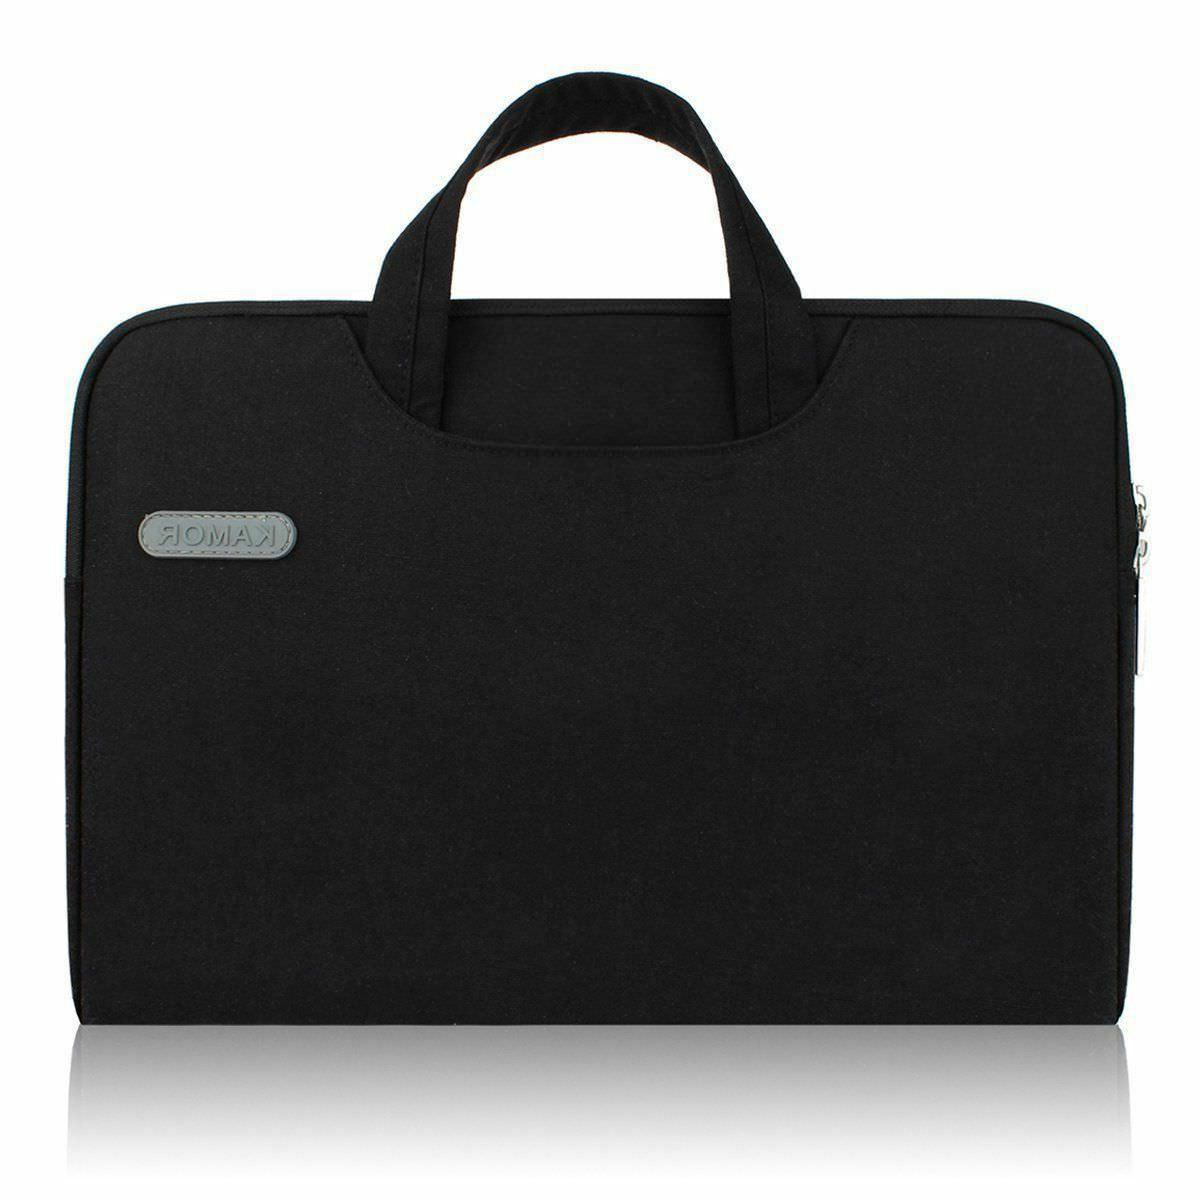 13 3 inch canvas fabric laptop carrying